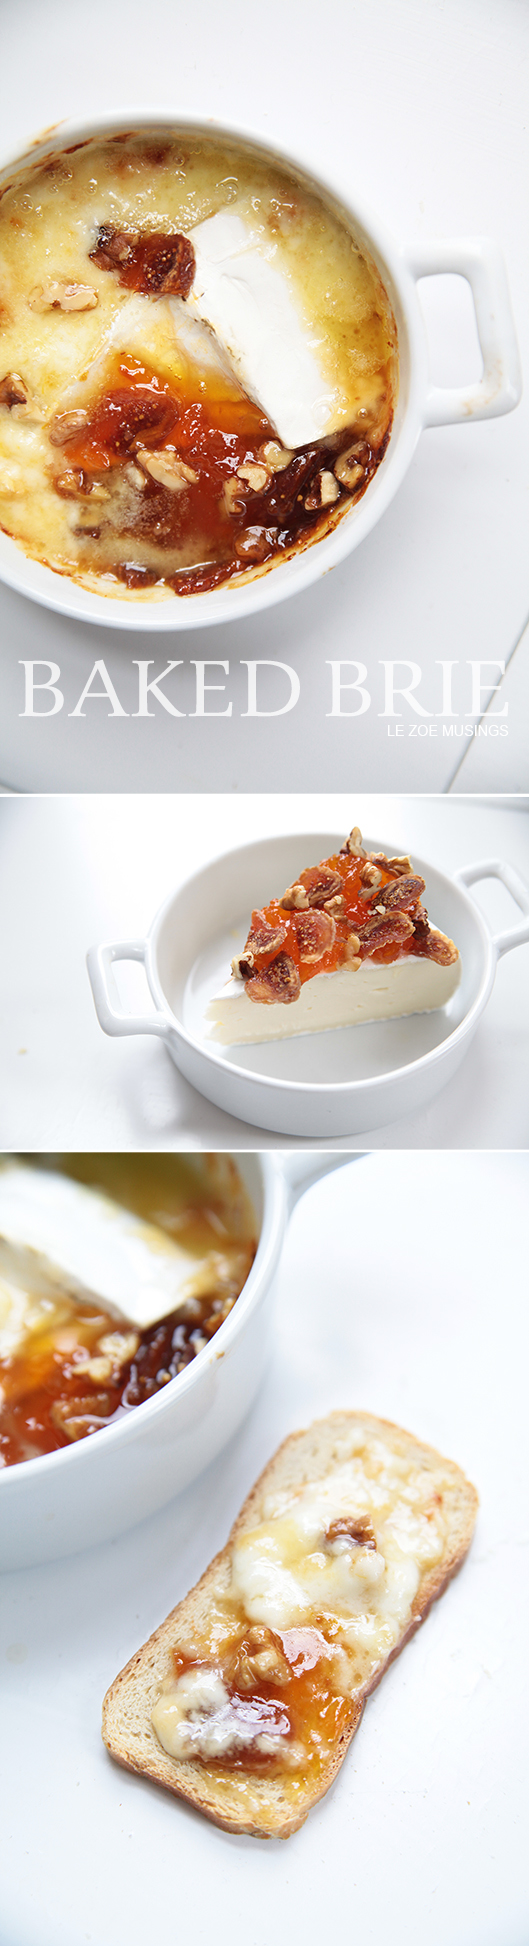 Baked Brie With Apricot Jam, Figs, Walnuts | LE ZOE MUSINGS